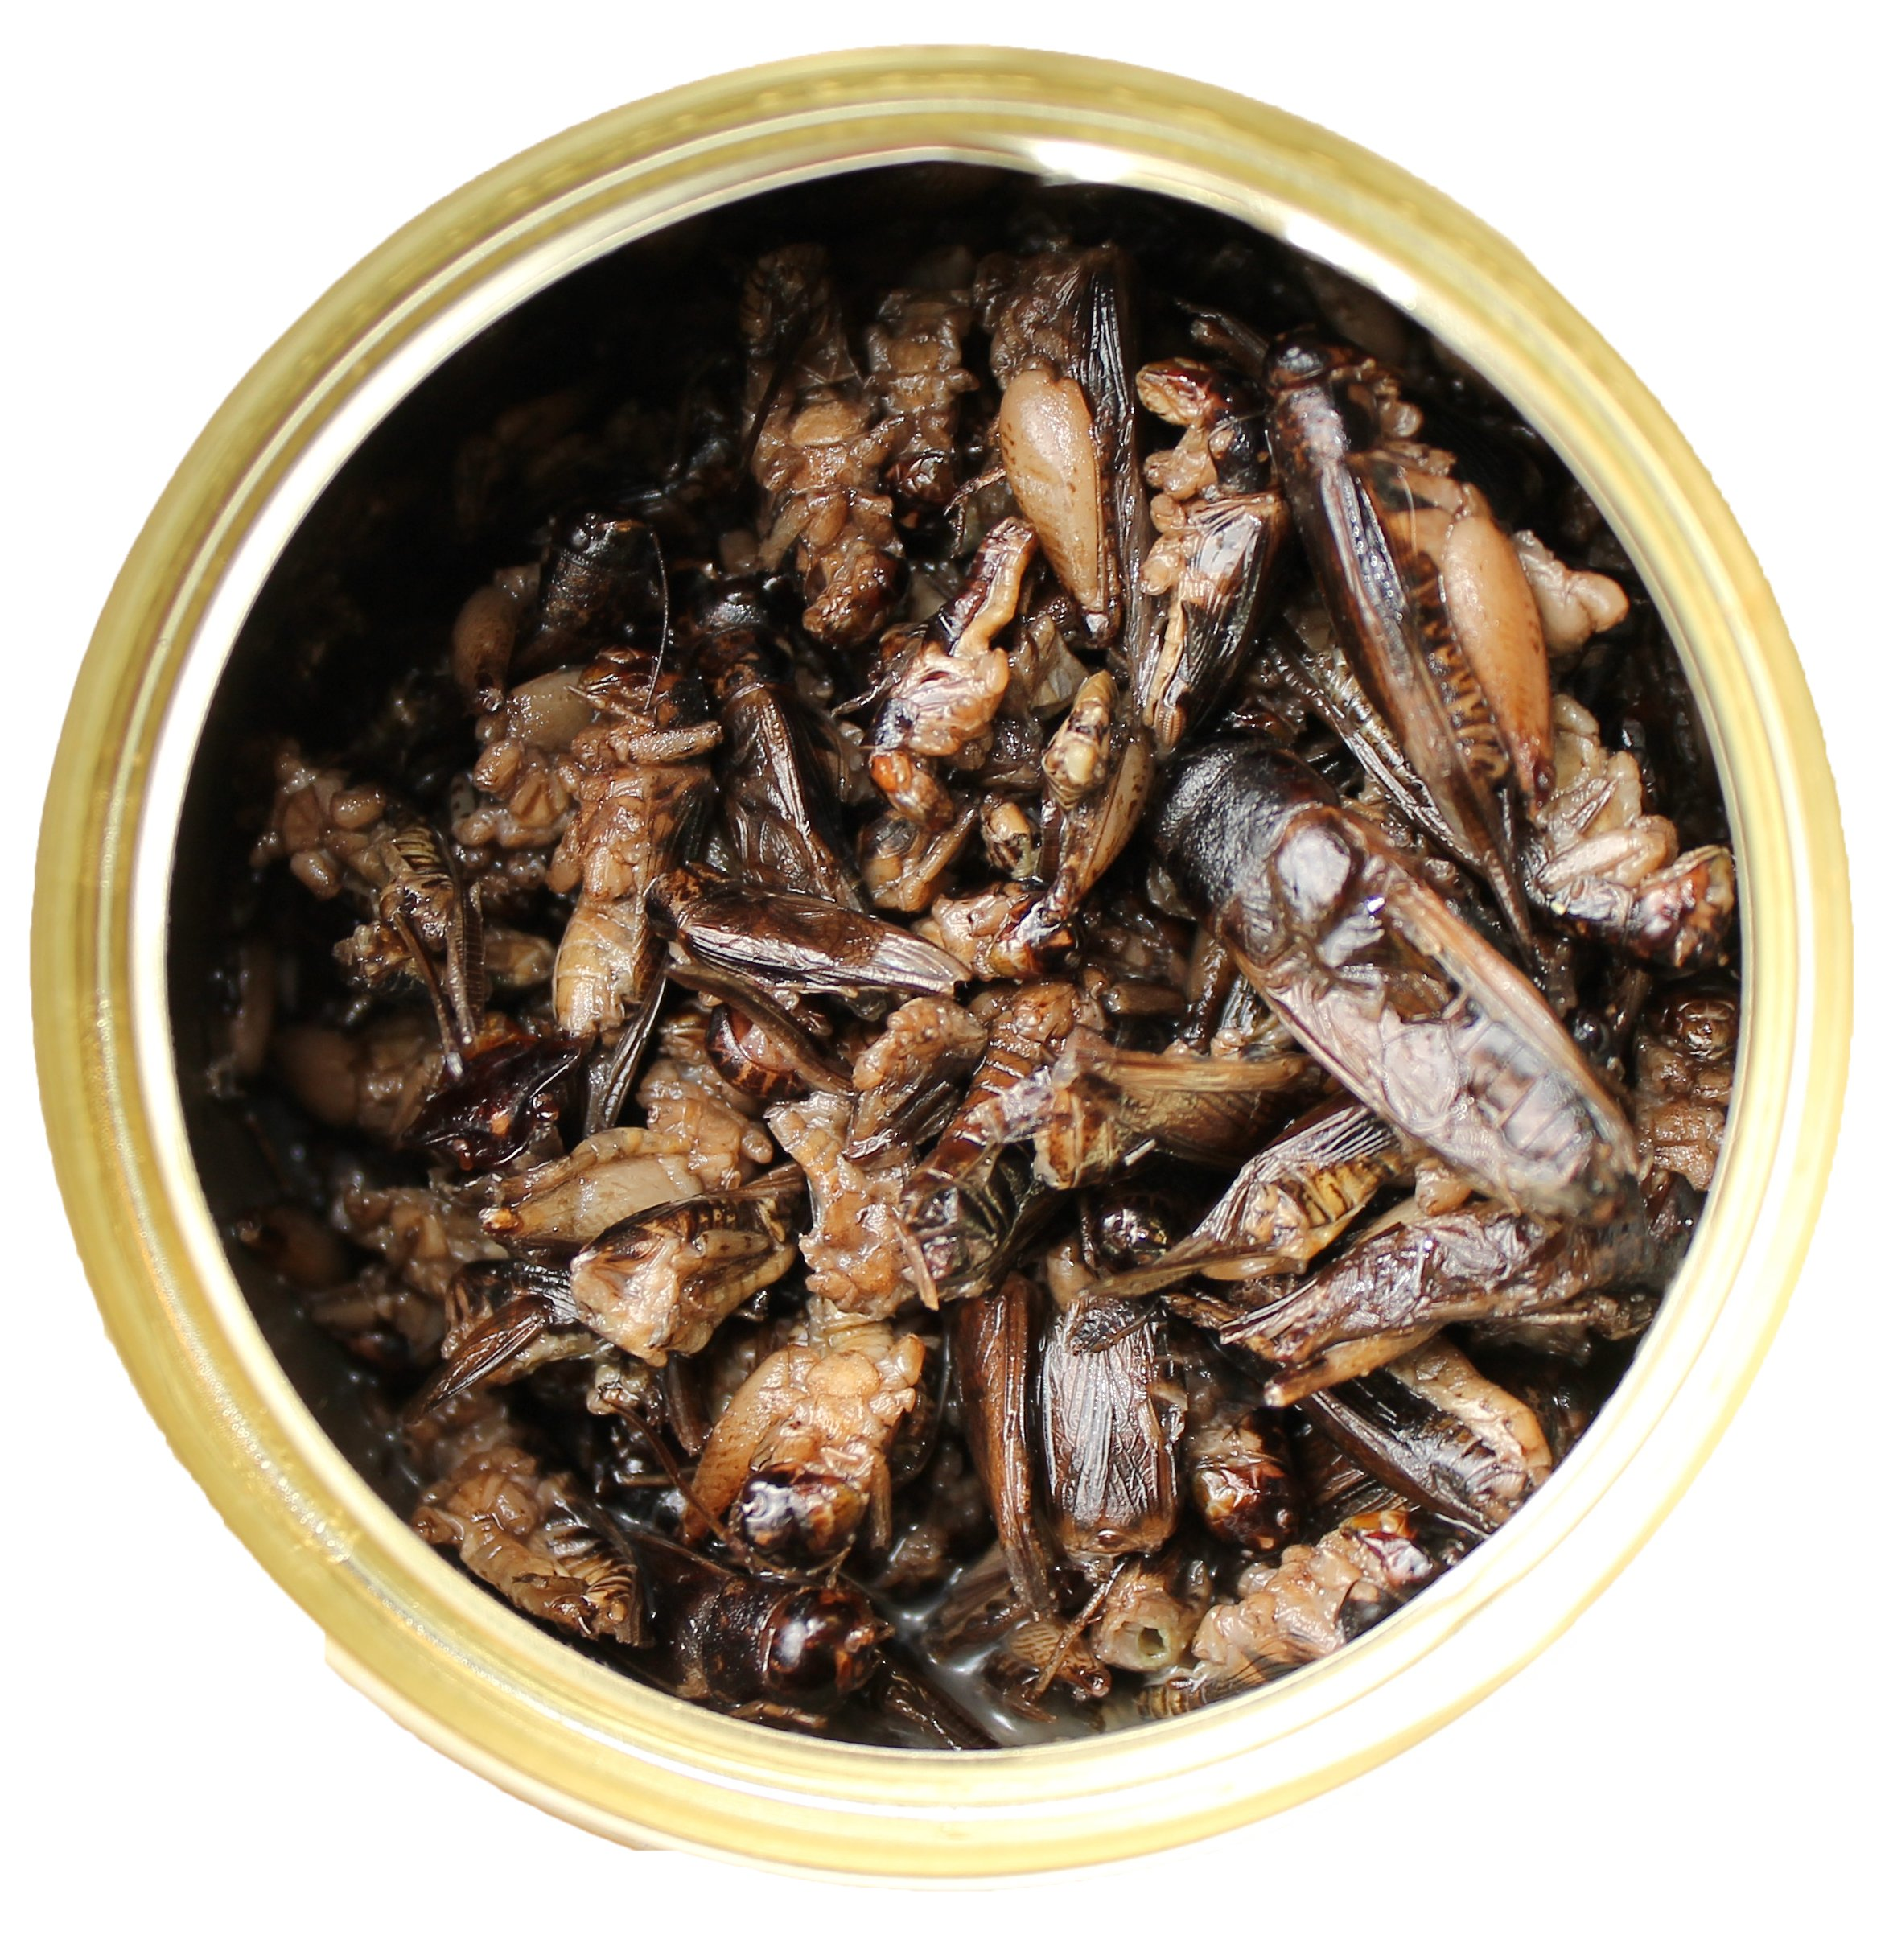 Exotic Nutrition Canned Crickets 35 g / 1.2 oz (6 Pack) by Exotic Nutrition (Image #2)